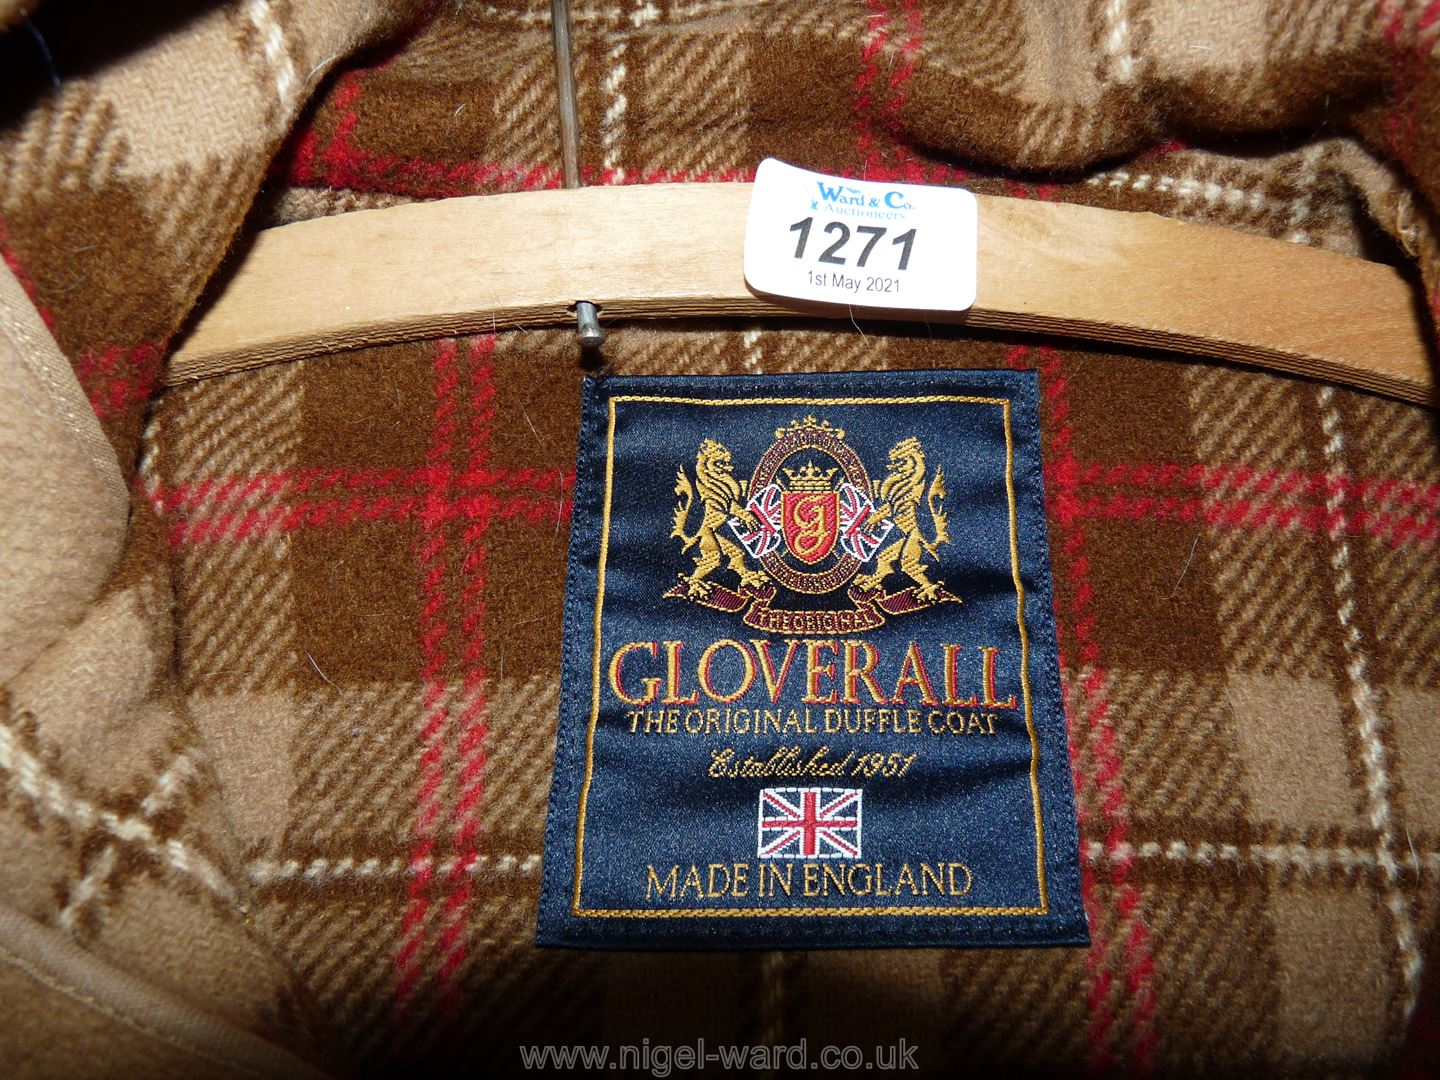 An origiinal camel duffle coat by Gloverall. - Image 2 of 3